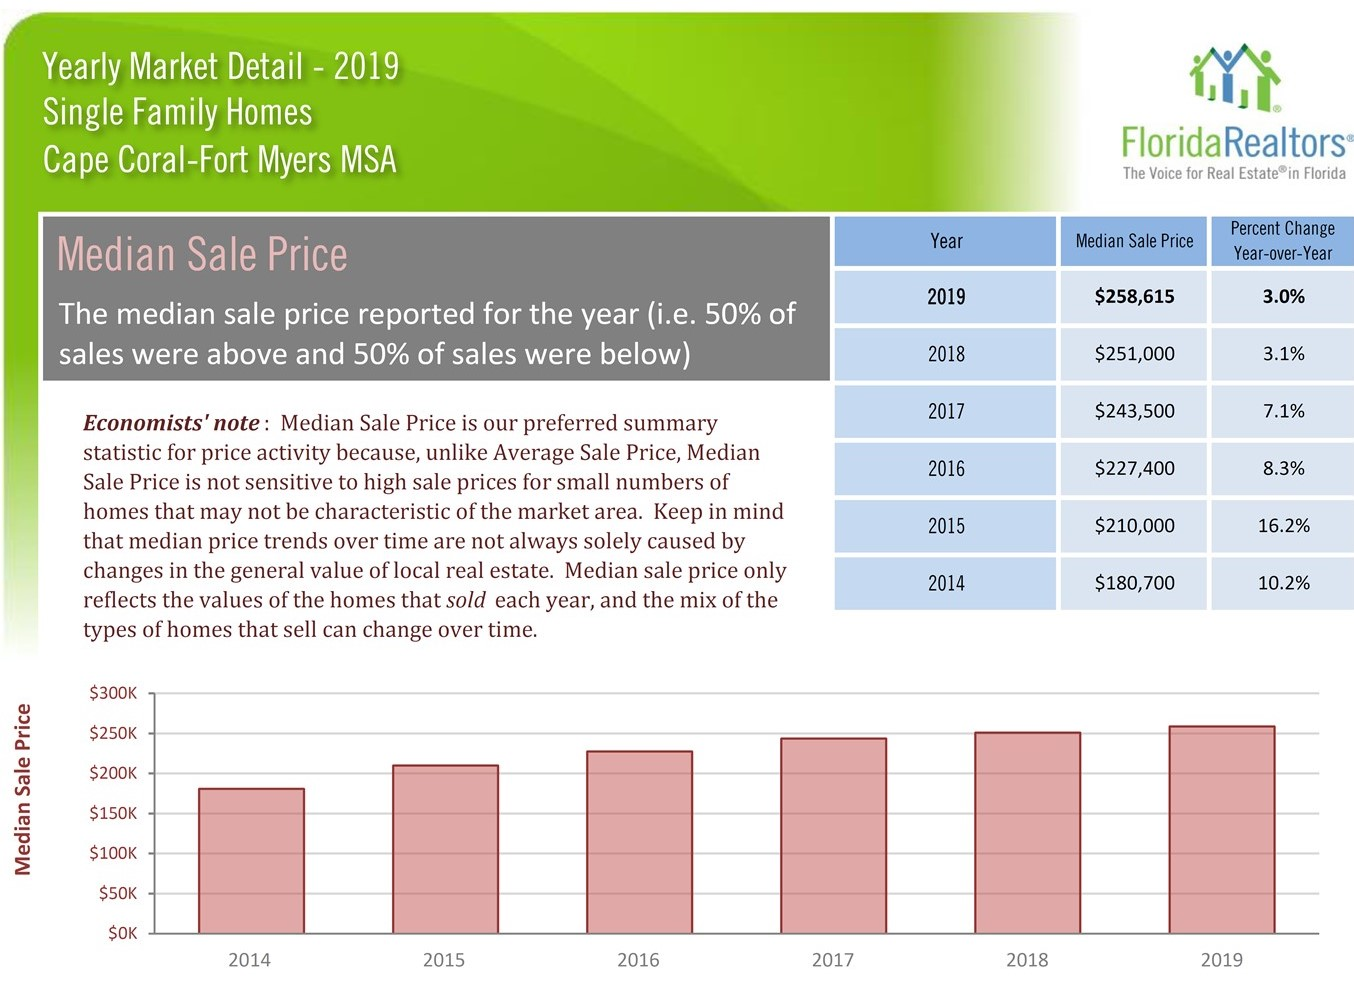 2019 Market Statistics for single family home median sale price in the Cape Coral Fort Myers area